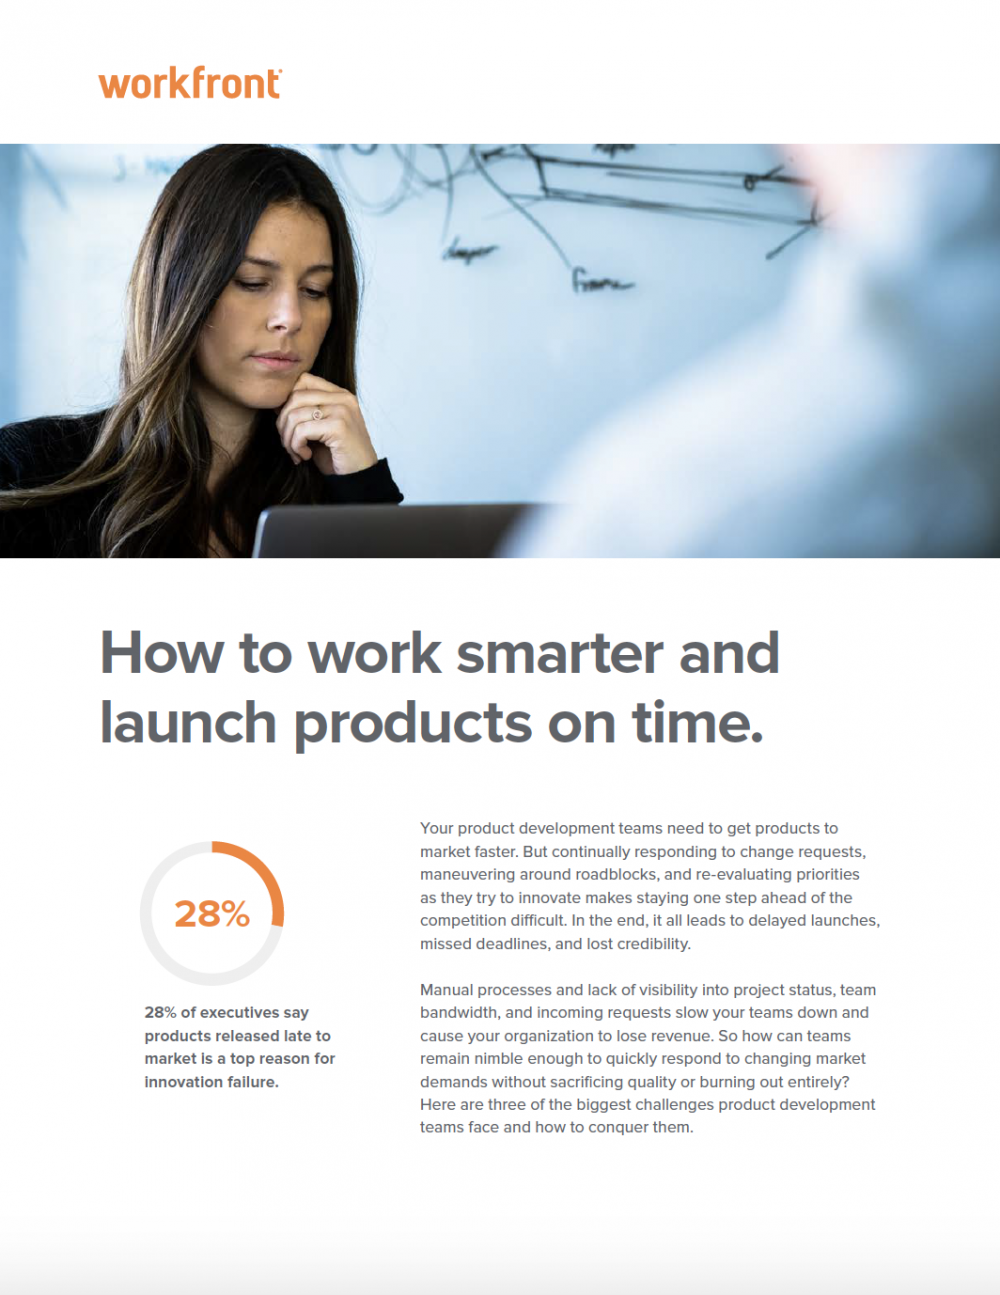 How to Work Smarter and Launch Products On Time